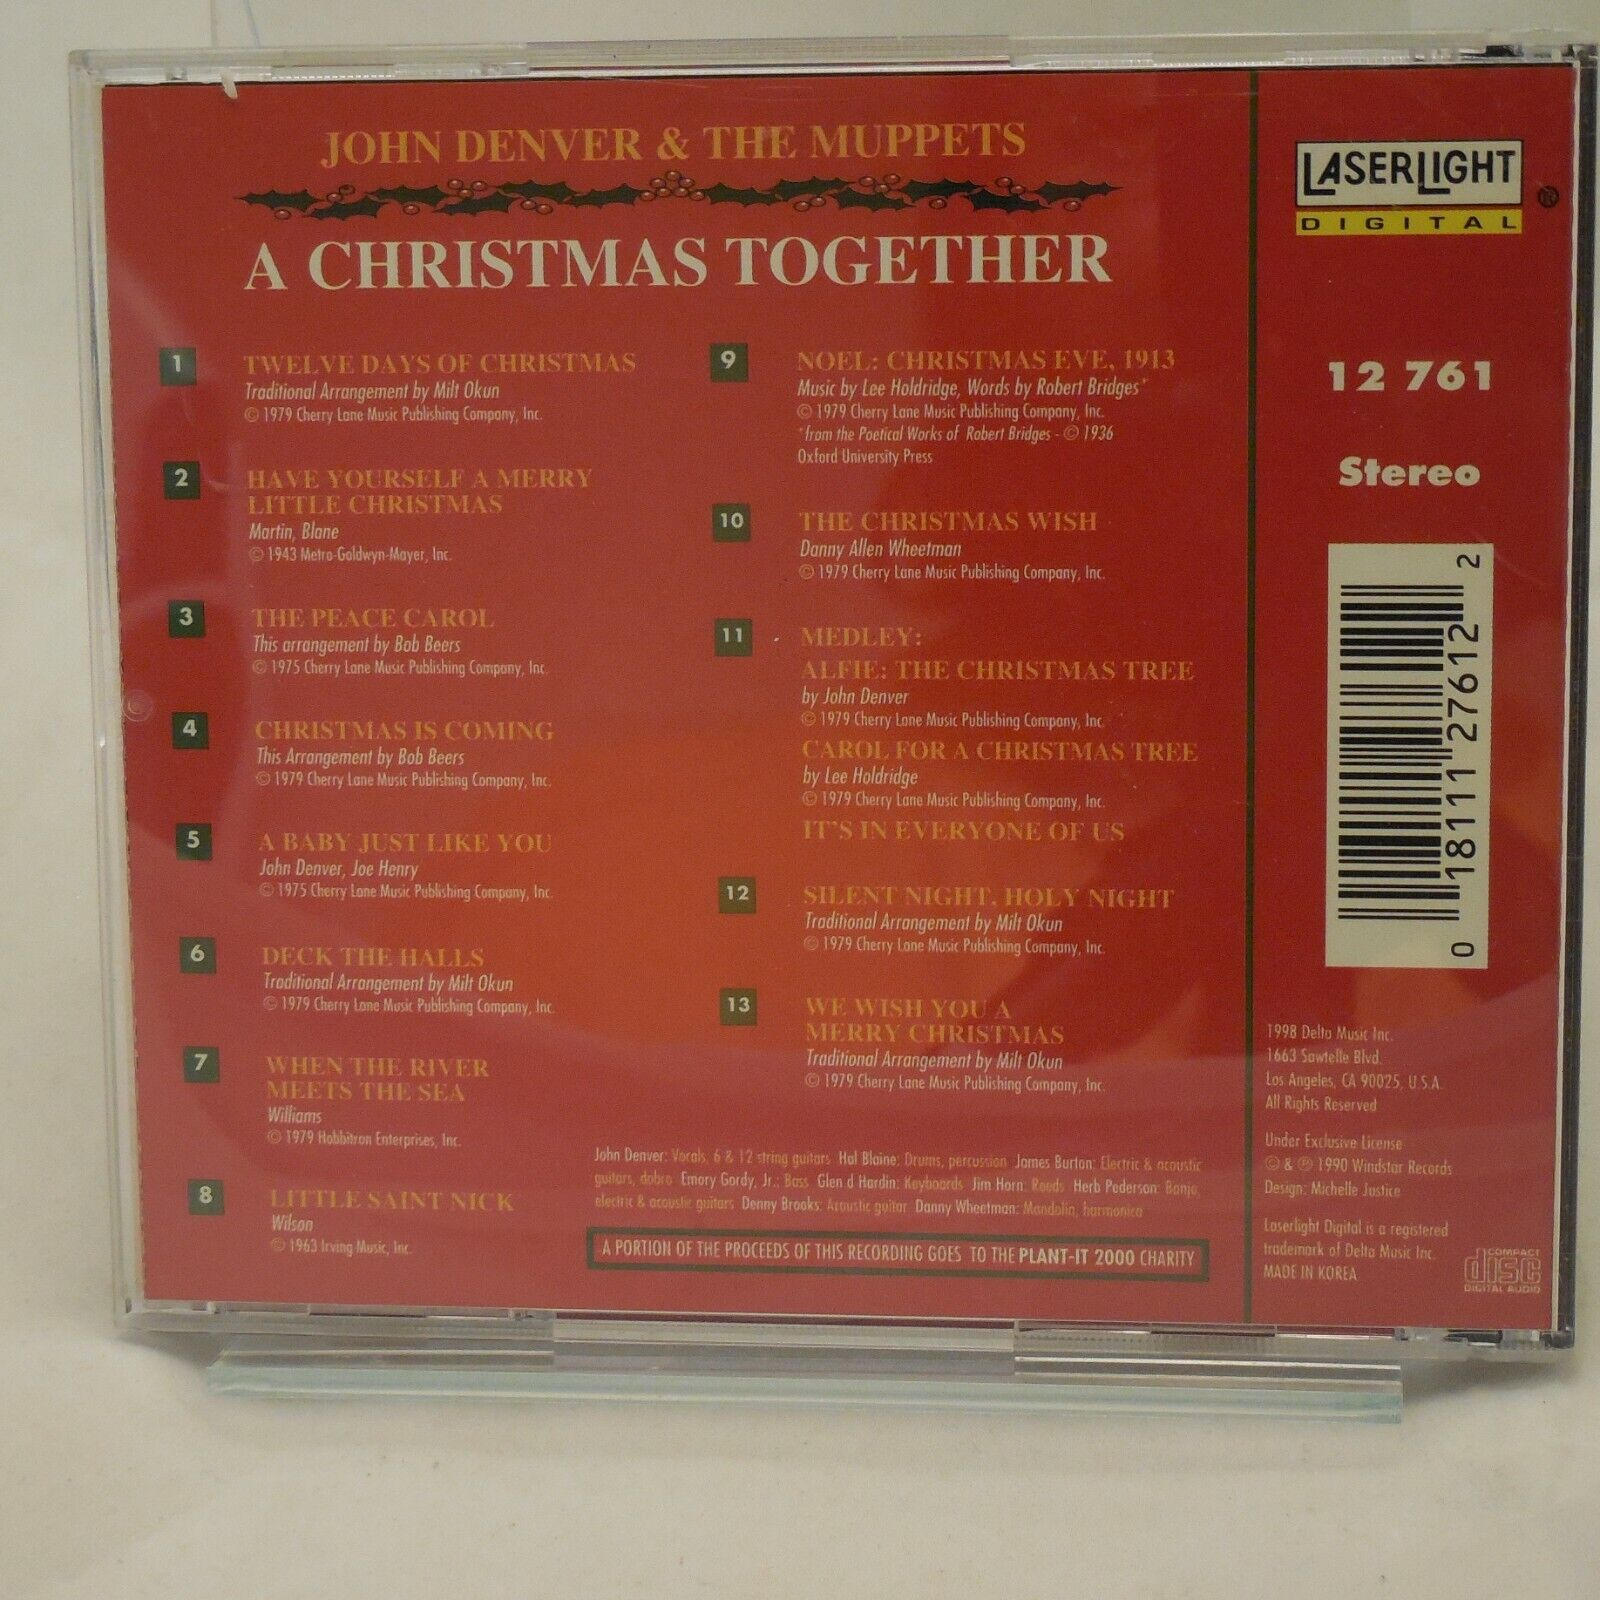 A Christmas Together By John Denver/The Muppets CD, Dec-1988, Laserlight  - $7.99